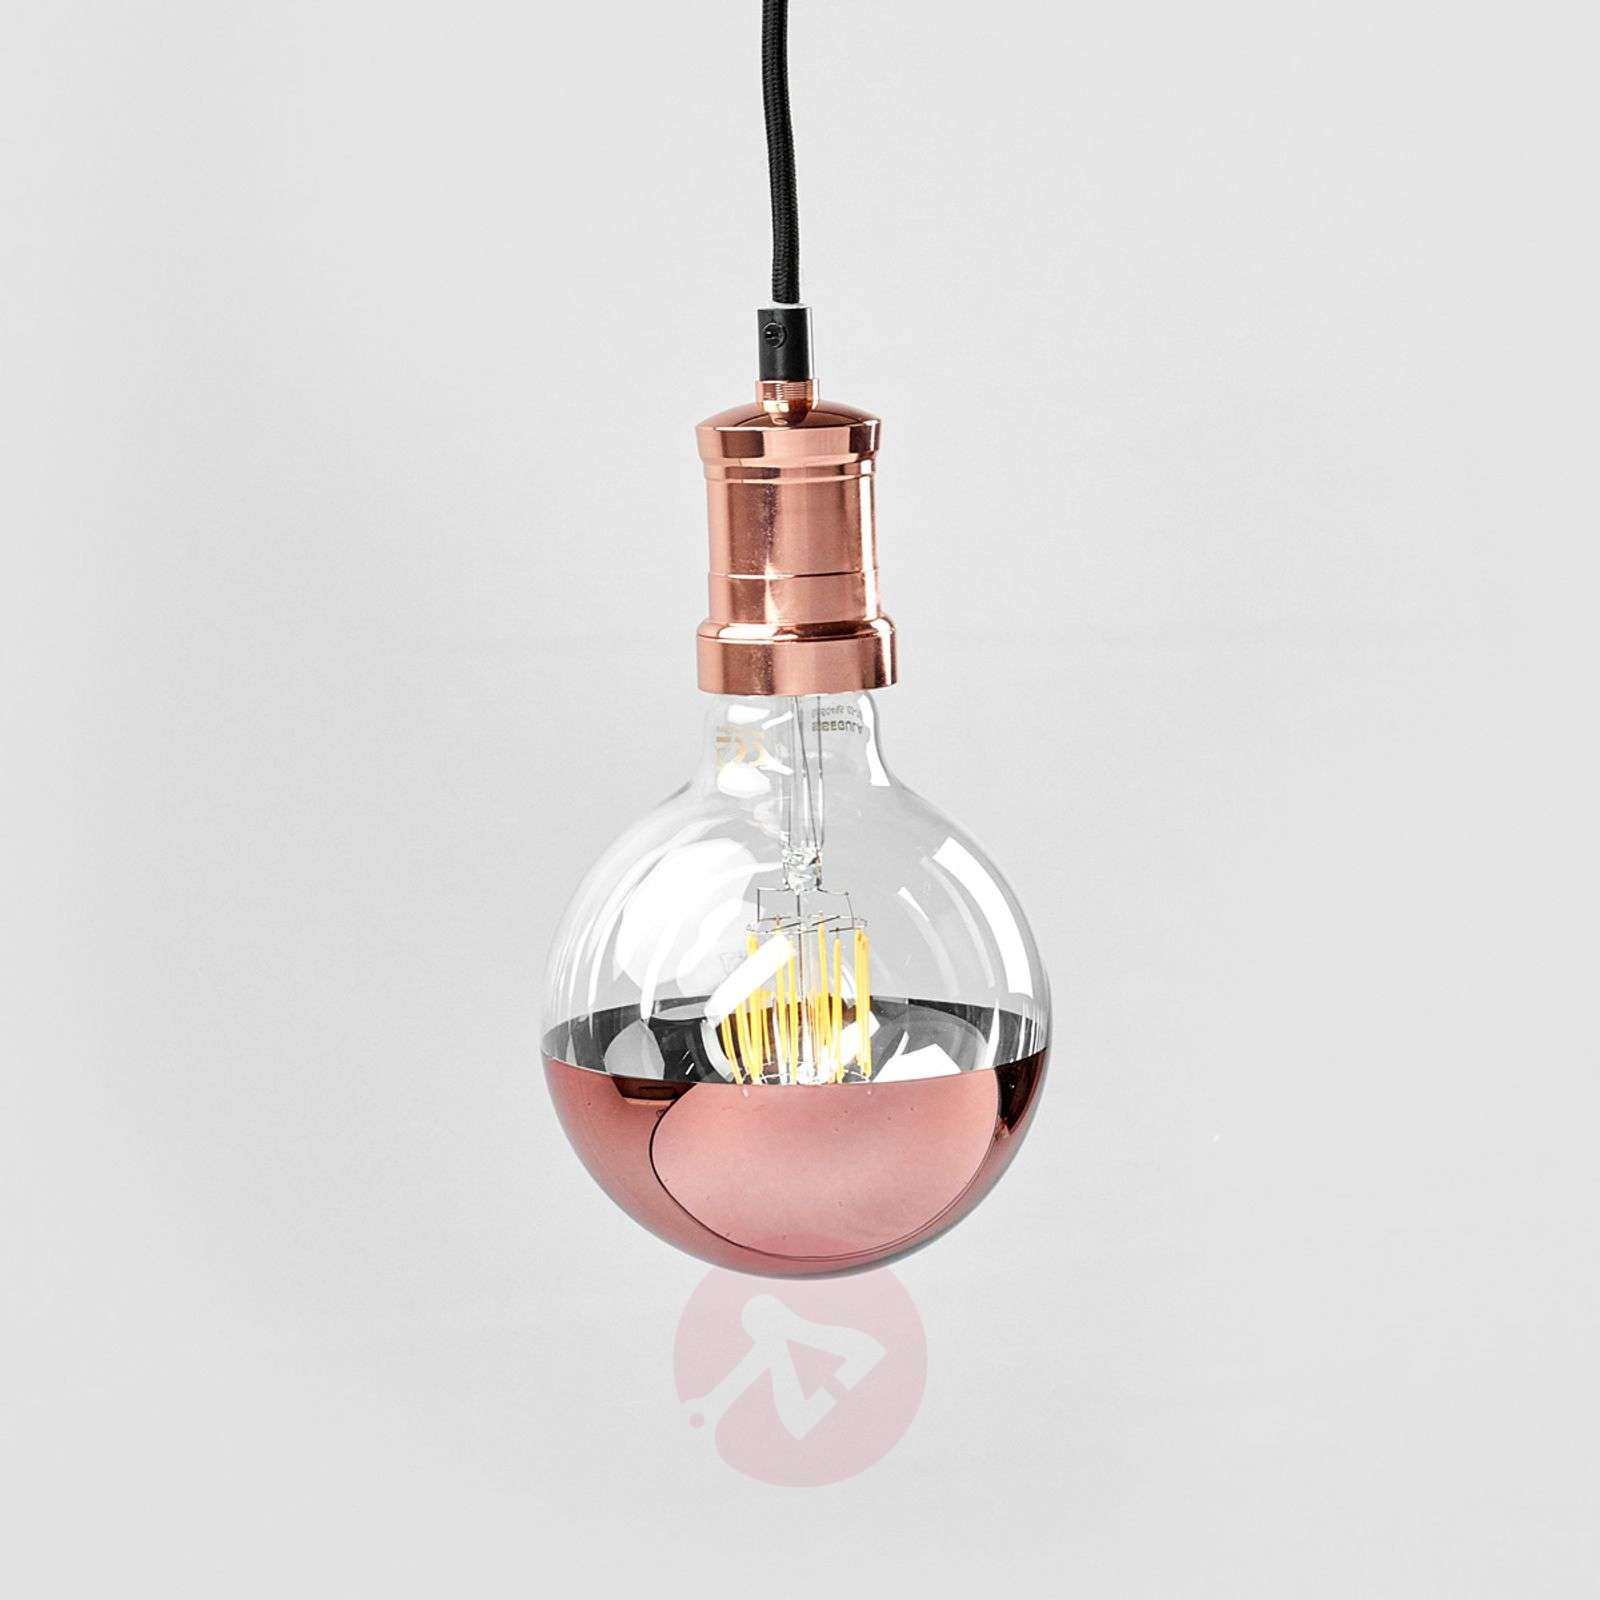 Chicago Lighting Company: Copper-coloured LED Hanging Light Chicago